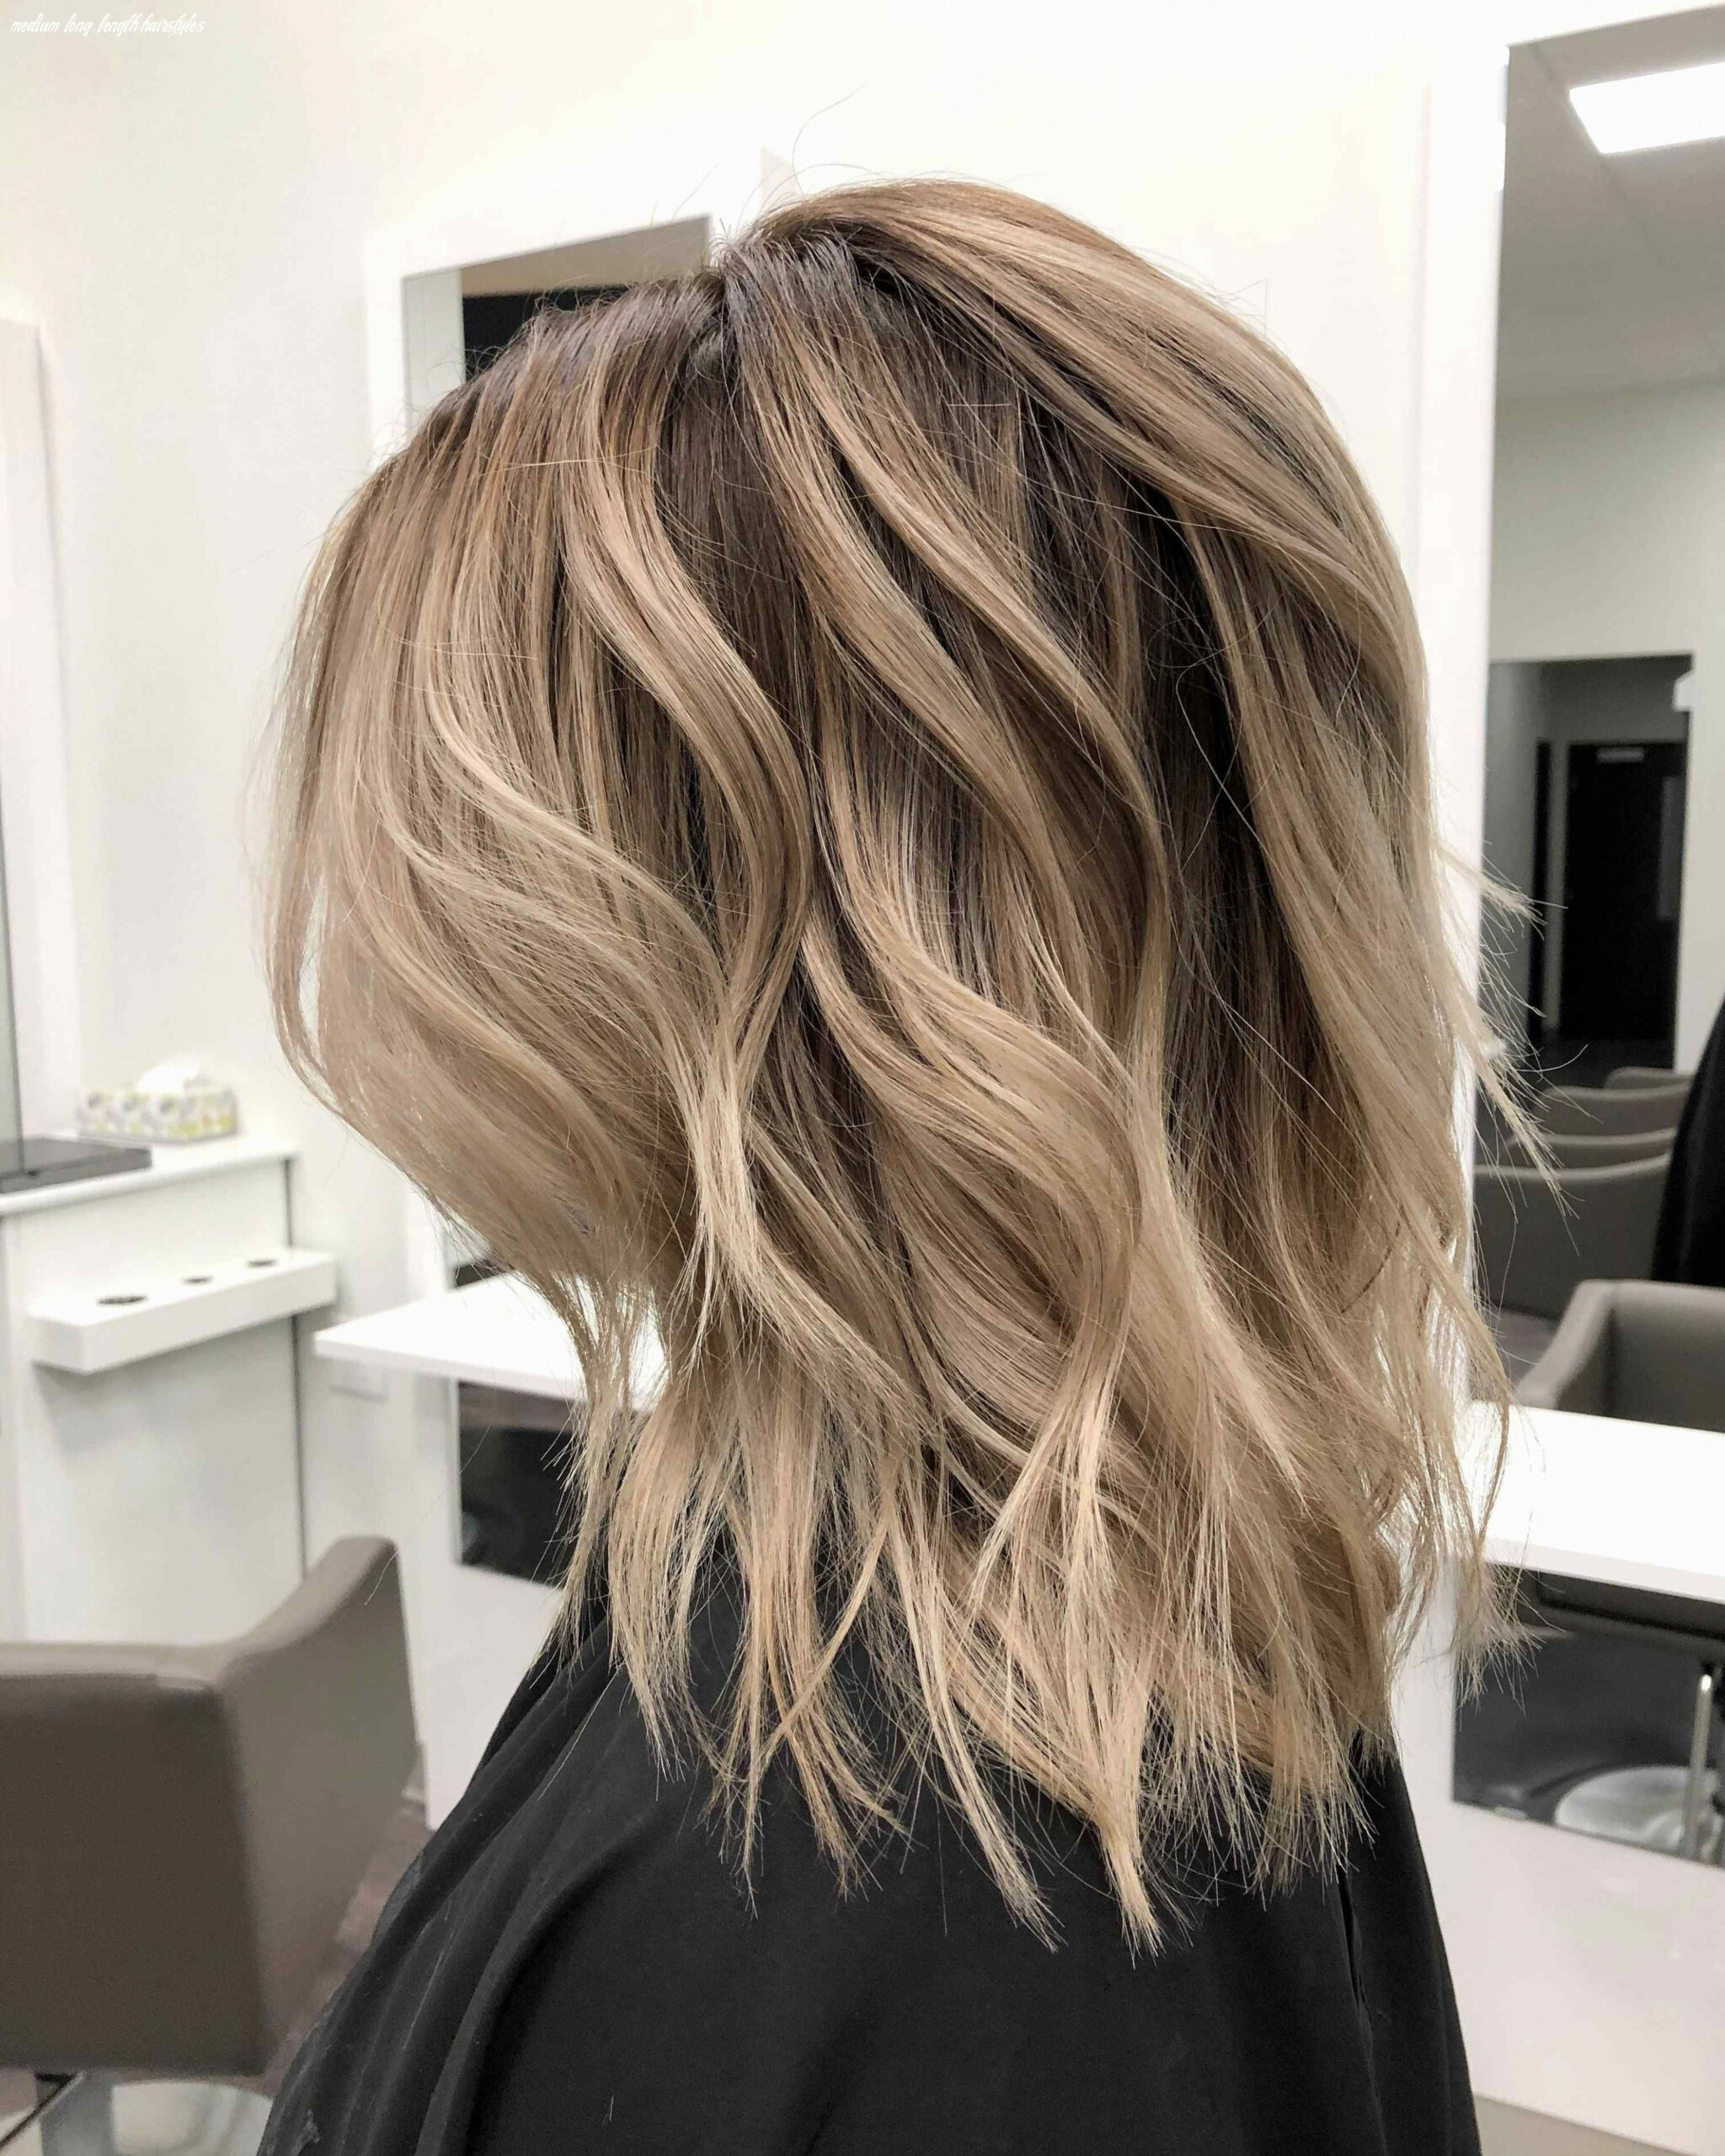 Irregular Suggestions On Your Hairs With 9 Mid Length ...